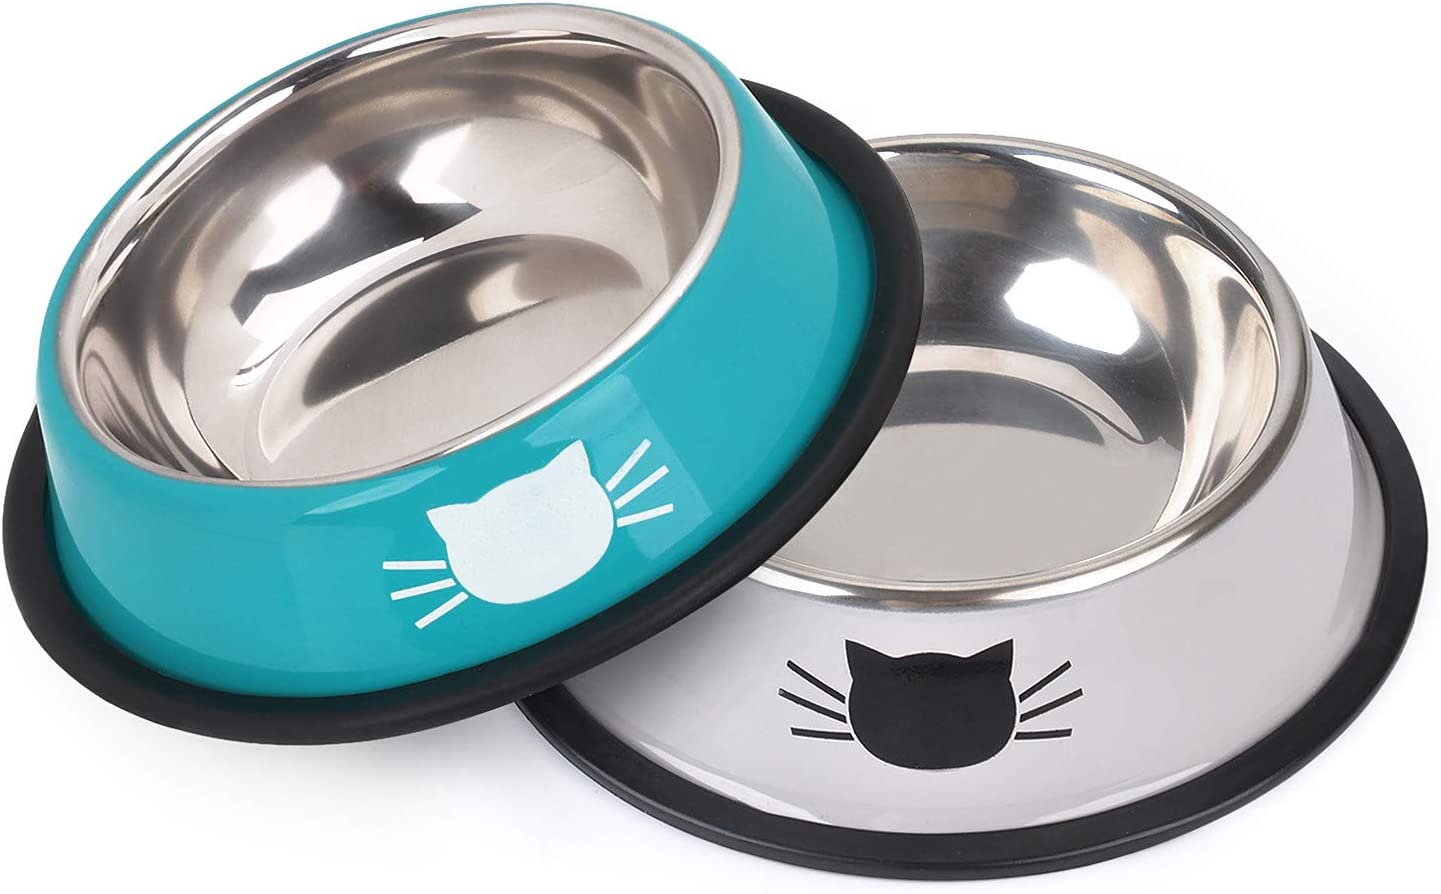 Legendog 2Pcs Cat Bowl Pet Bowl Stainless Steel Cat Food Water Bowl Non-Slip Rubber Base Small Pet Bowl Cat Feeding Bowls Set